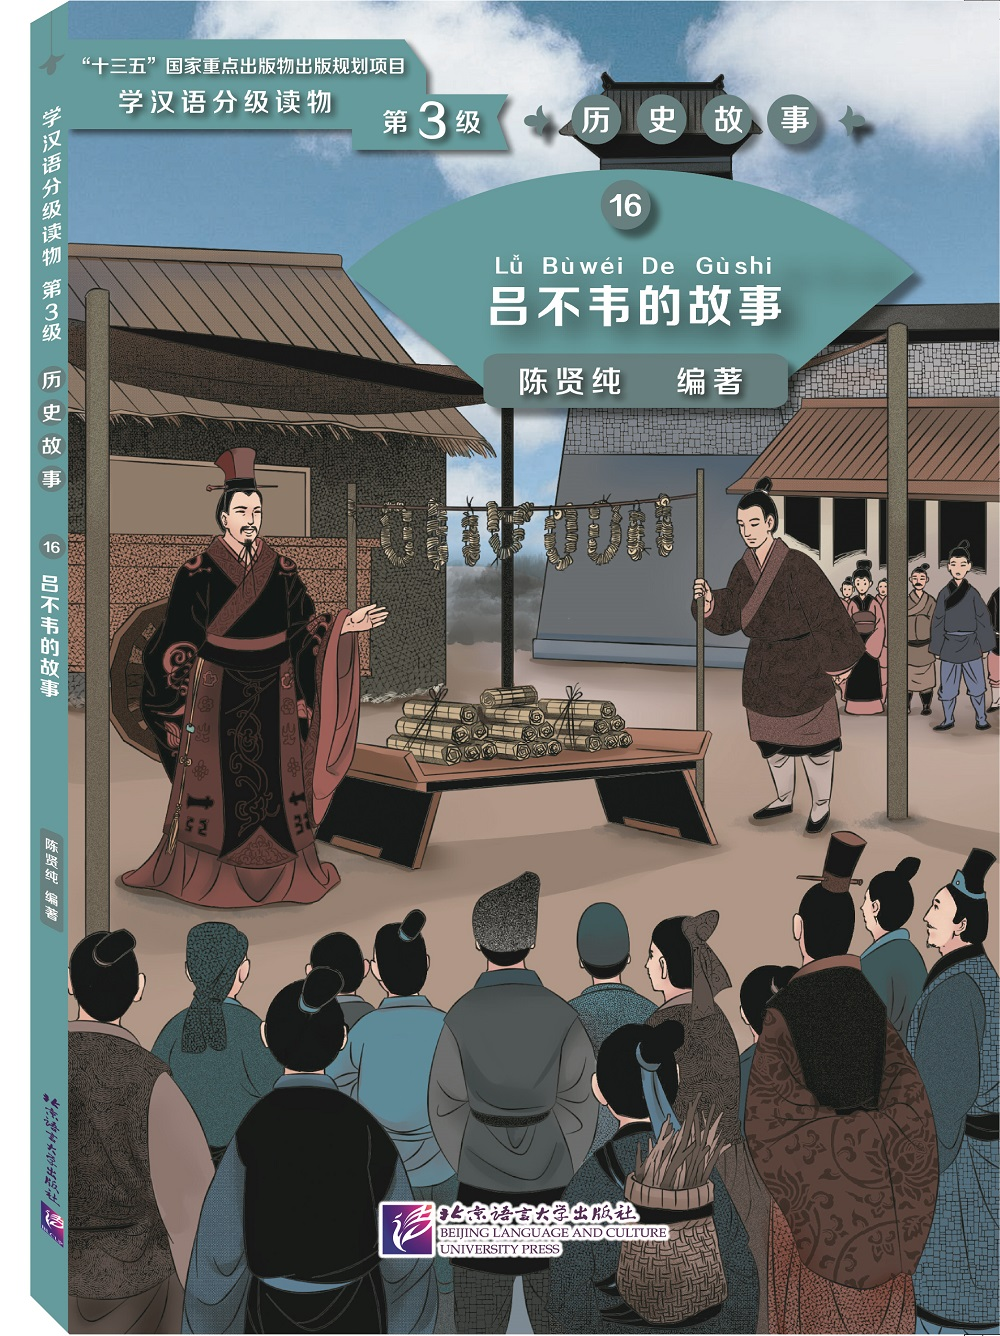 The Story of Lü Buwei (Level 3) - Graded Readers for Chinese Language Learners (Historical Stories)